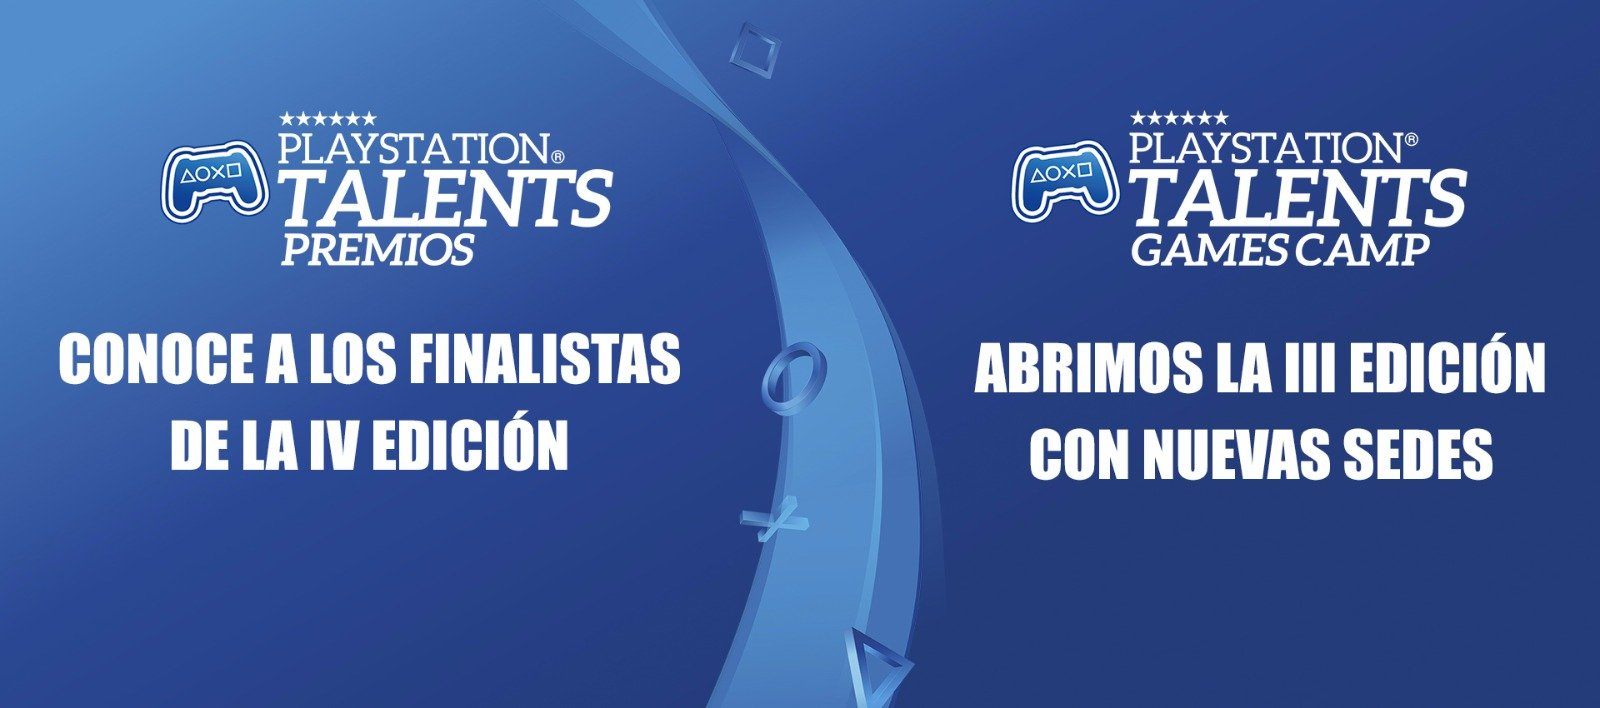 Premios_PlayStation_Talents_Estudios_Indie_Games_Camp